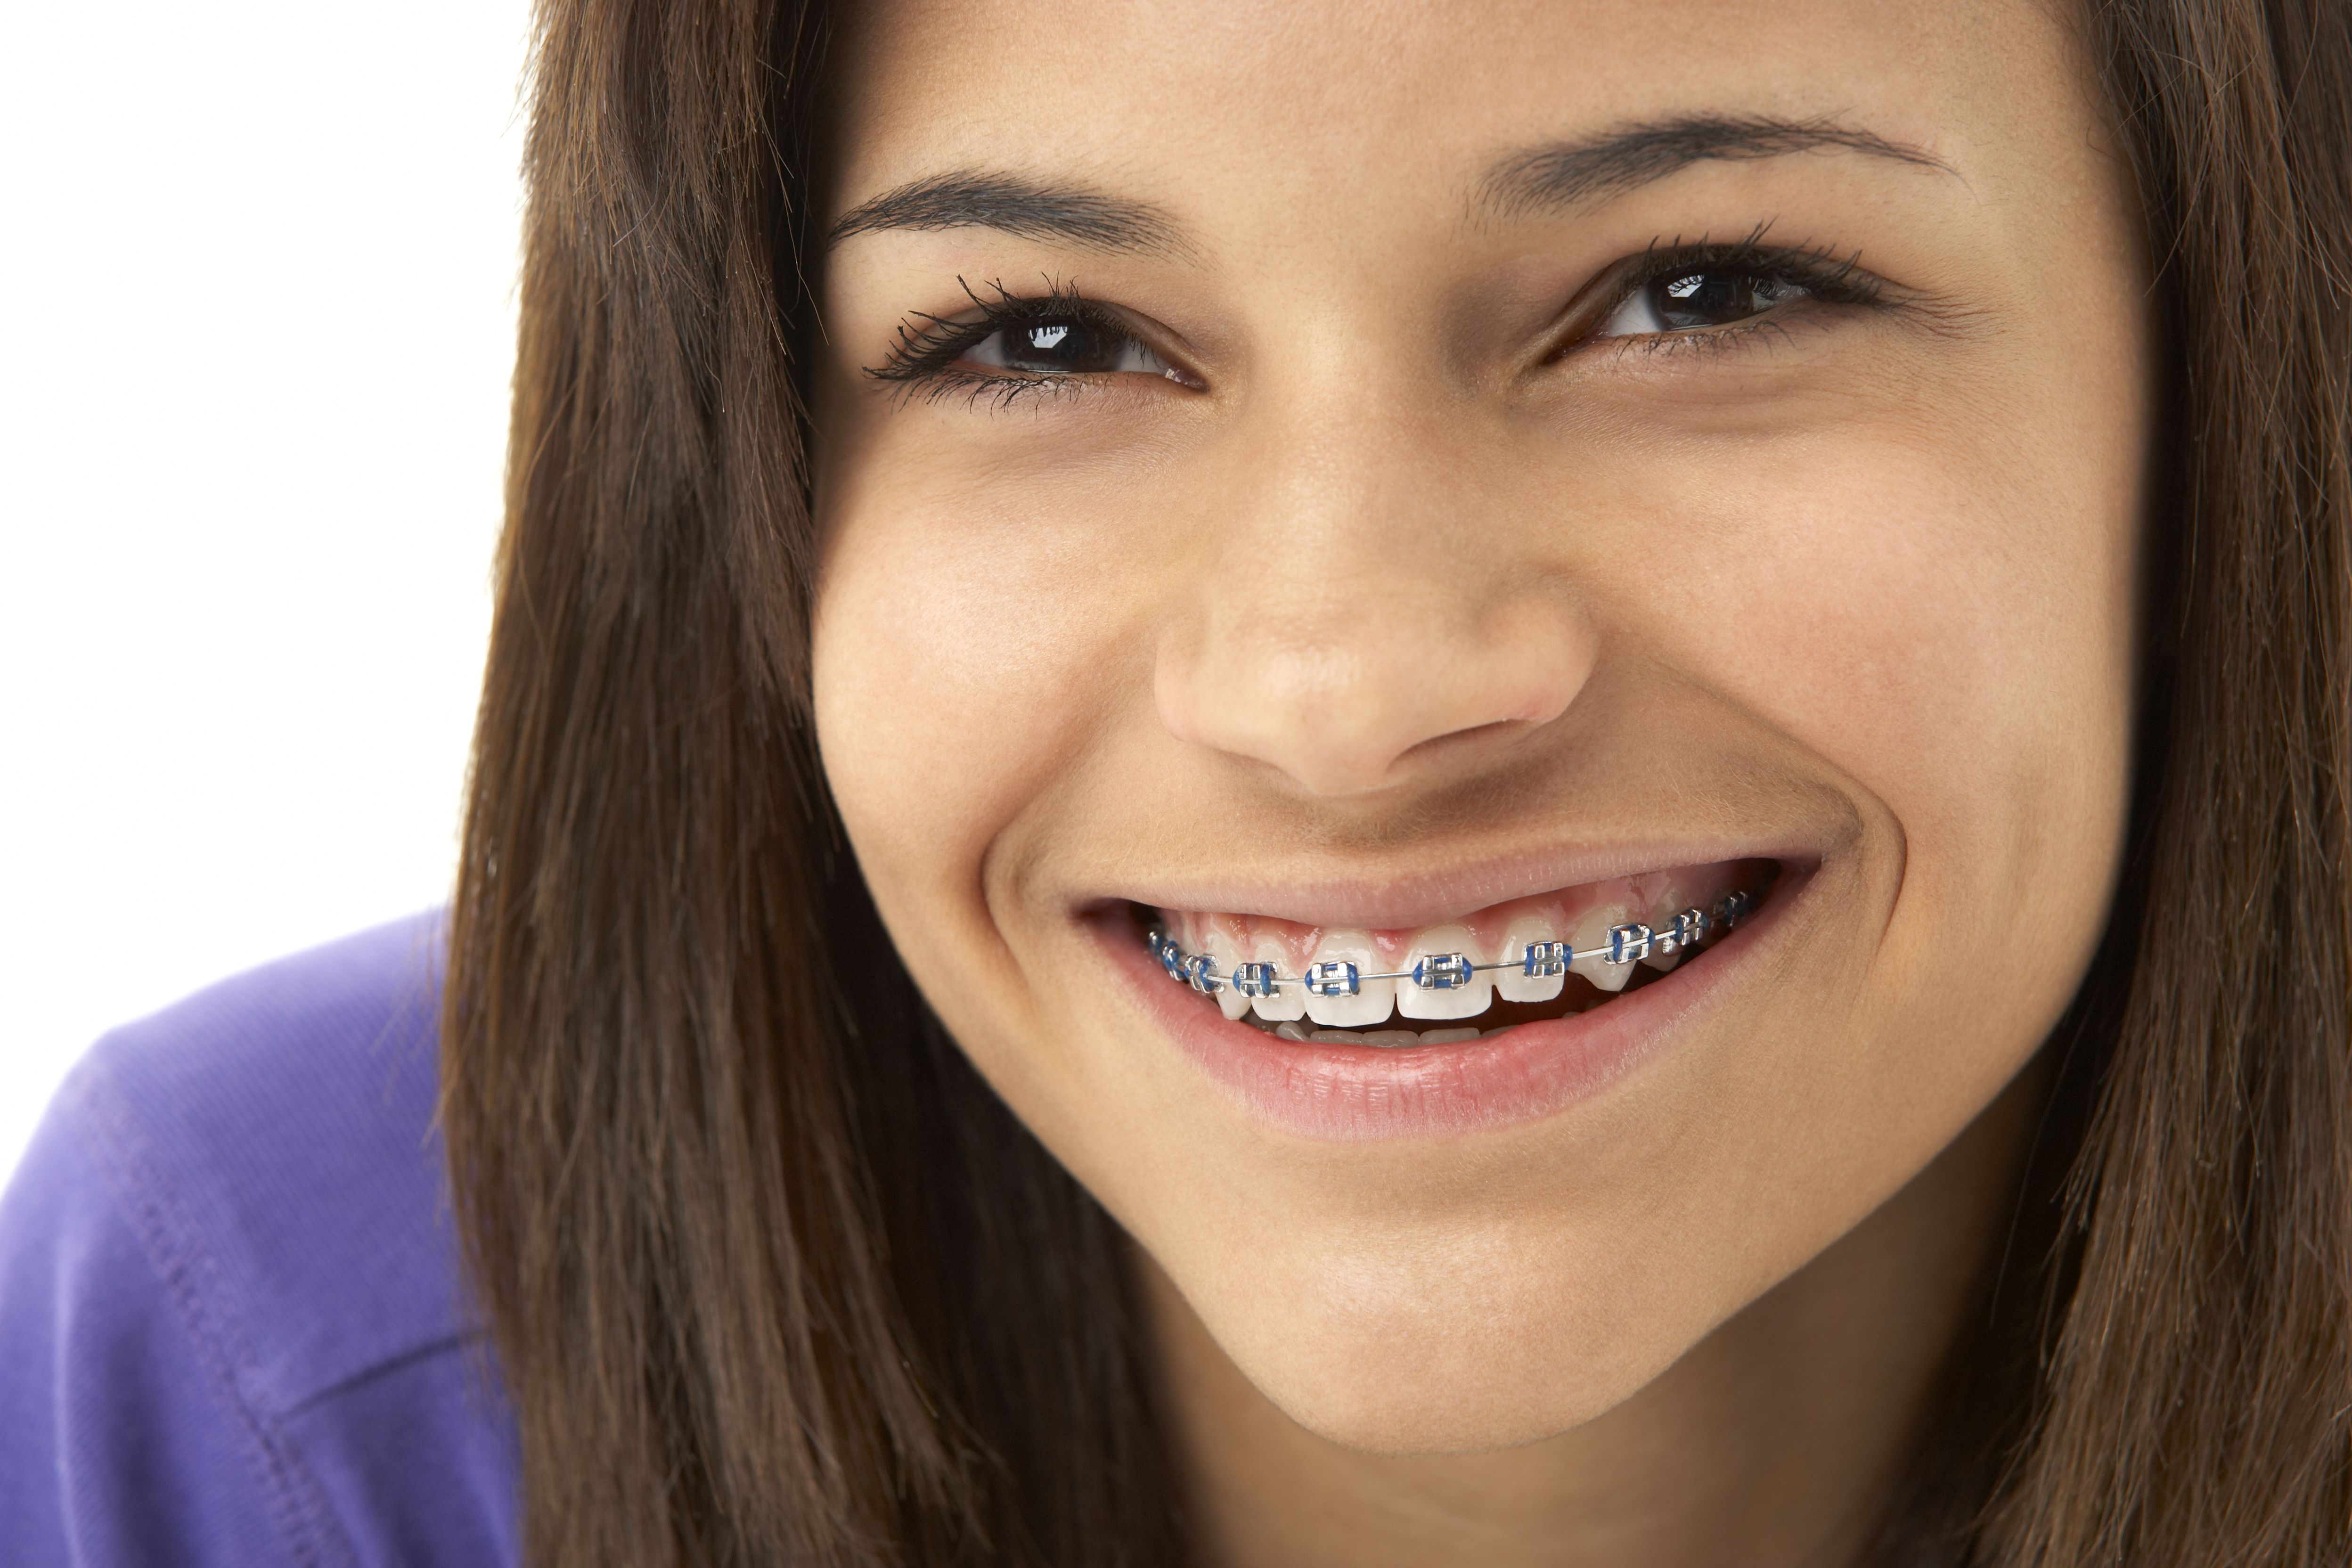 Portrait of young girl smiling with braces